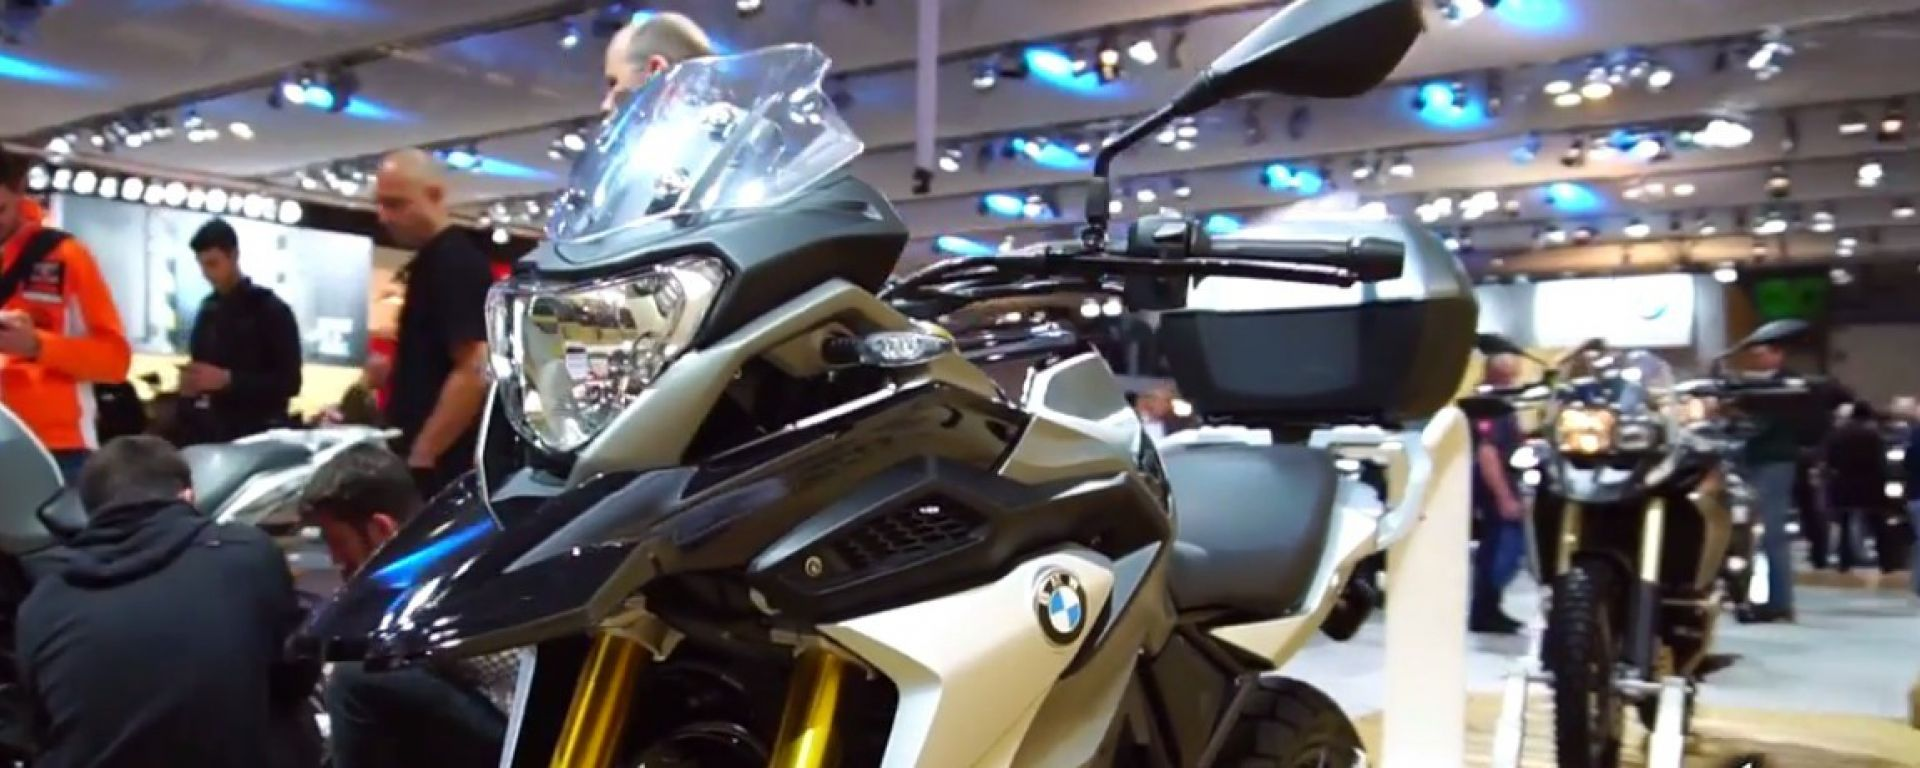 Live Eicma 2016: BMW G 310 GS in video